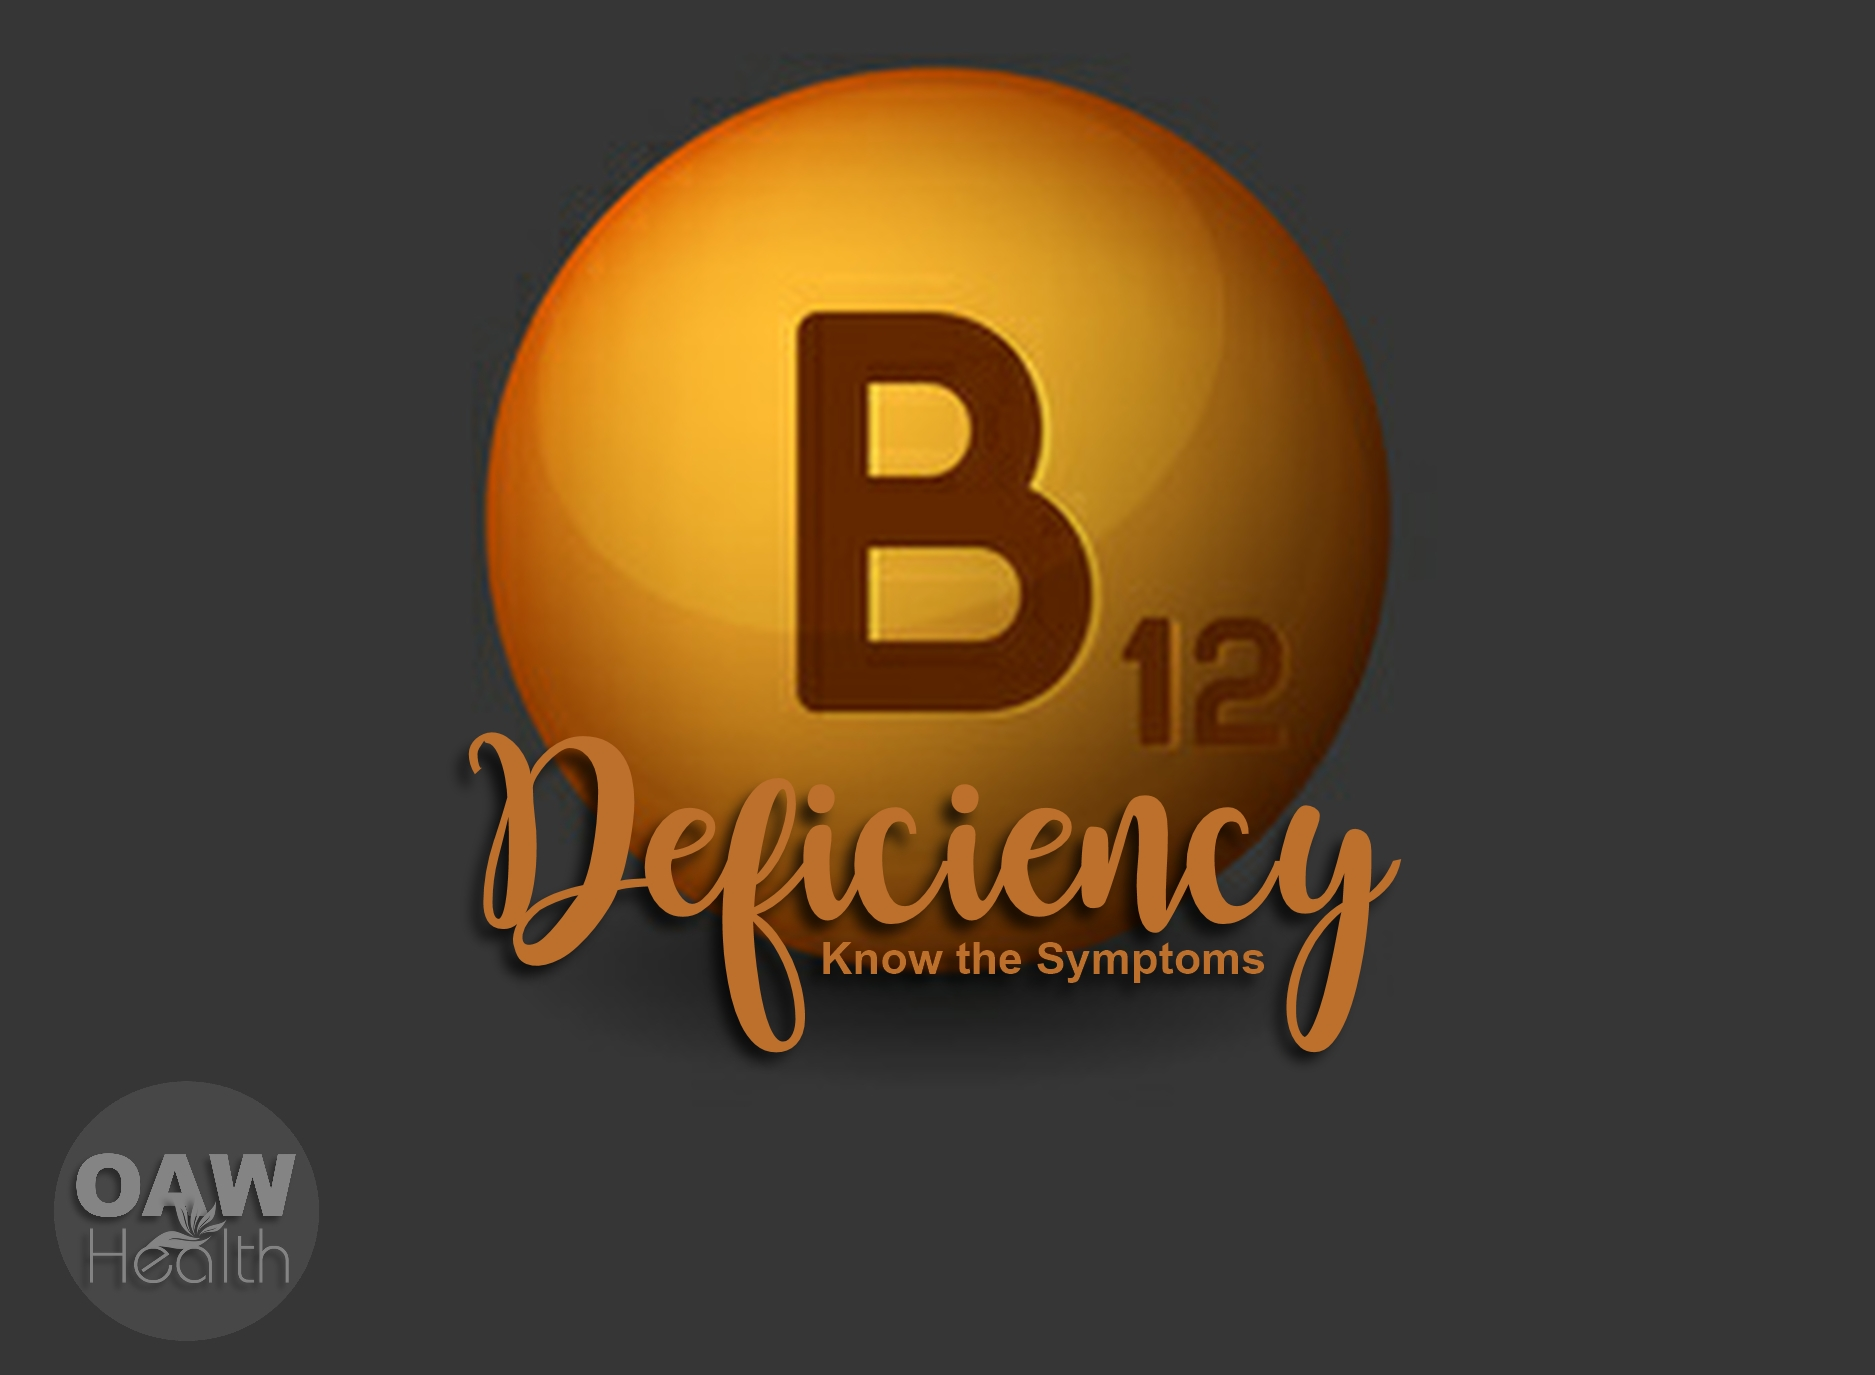 B-12 Deficiency – Know the Symptoms